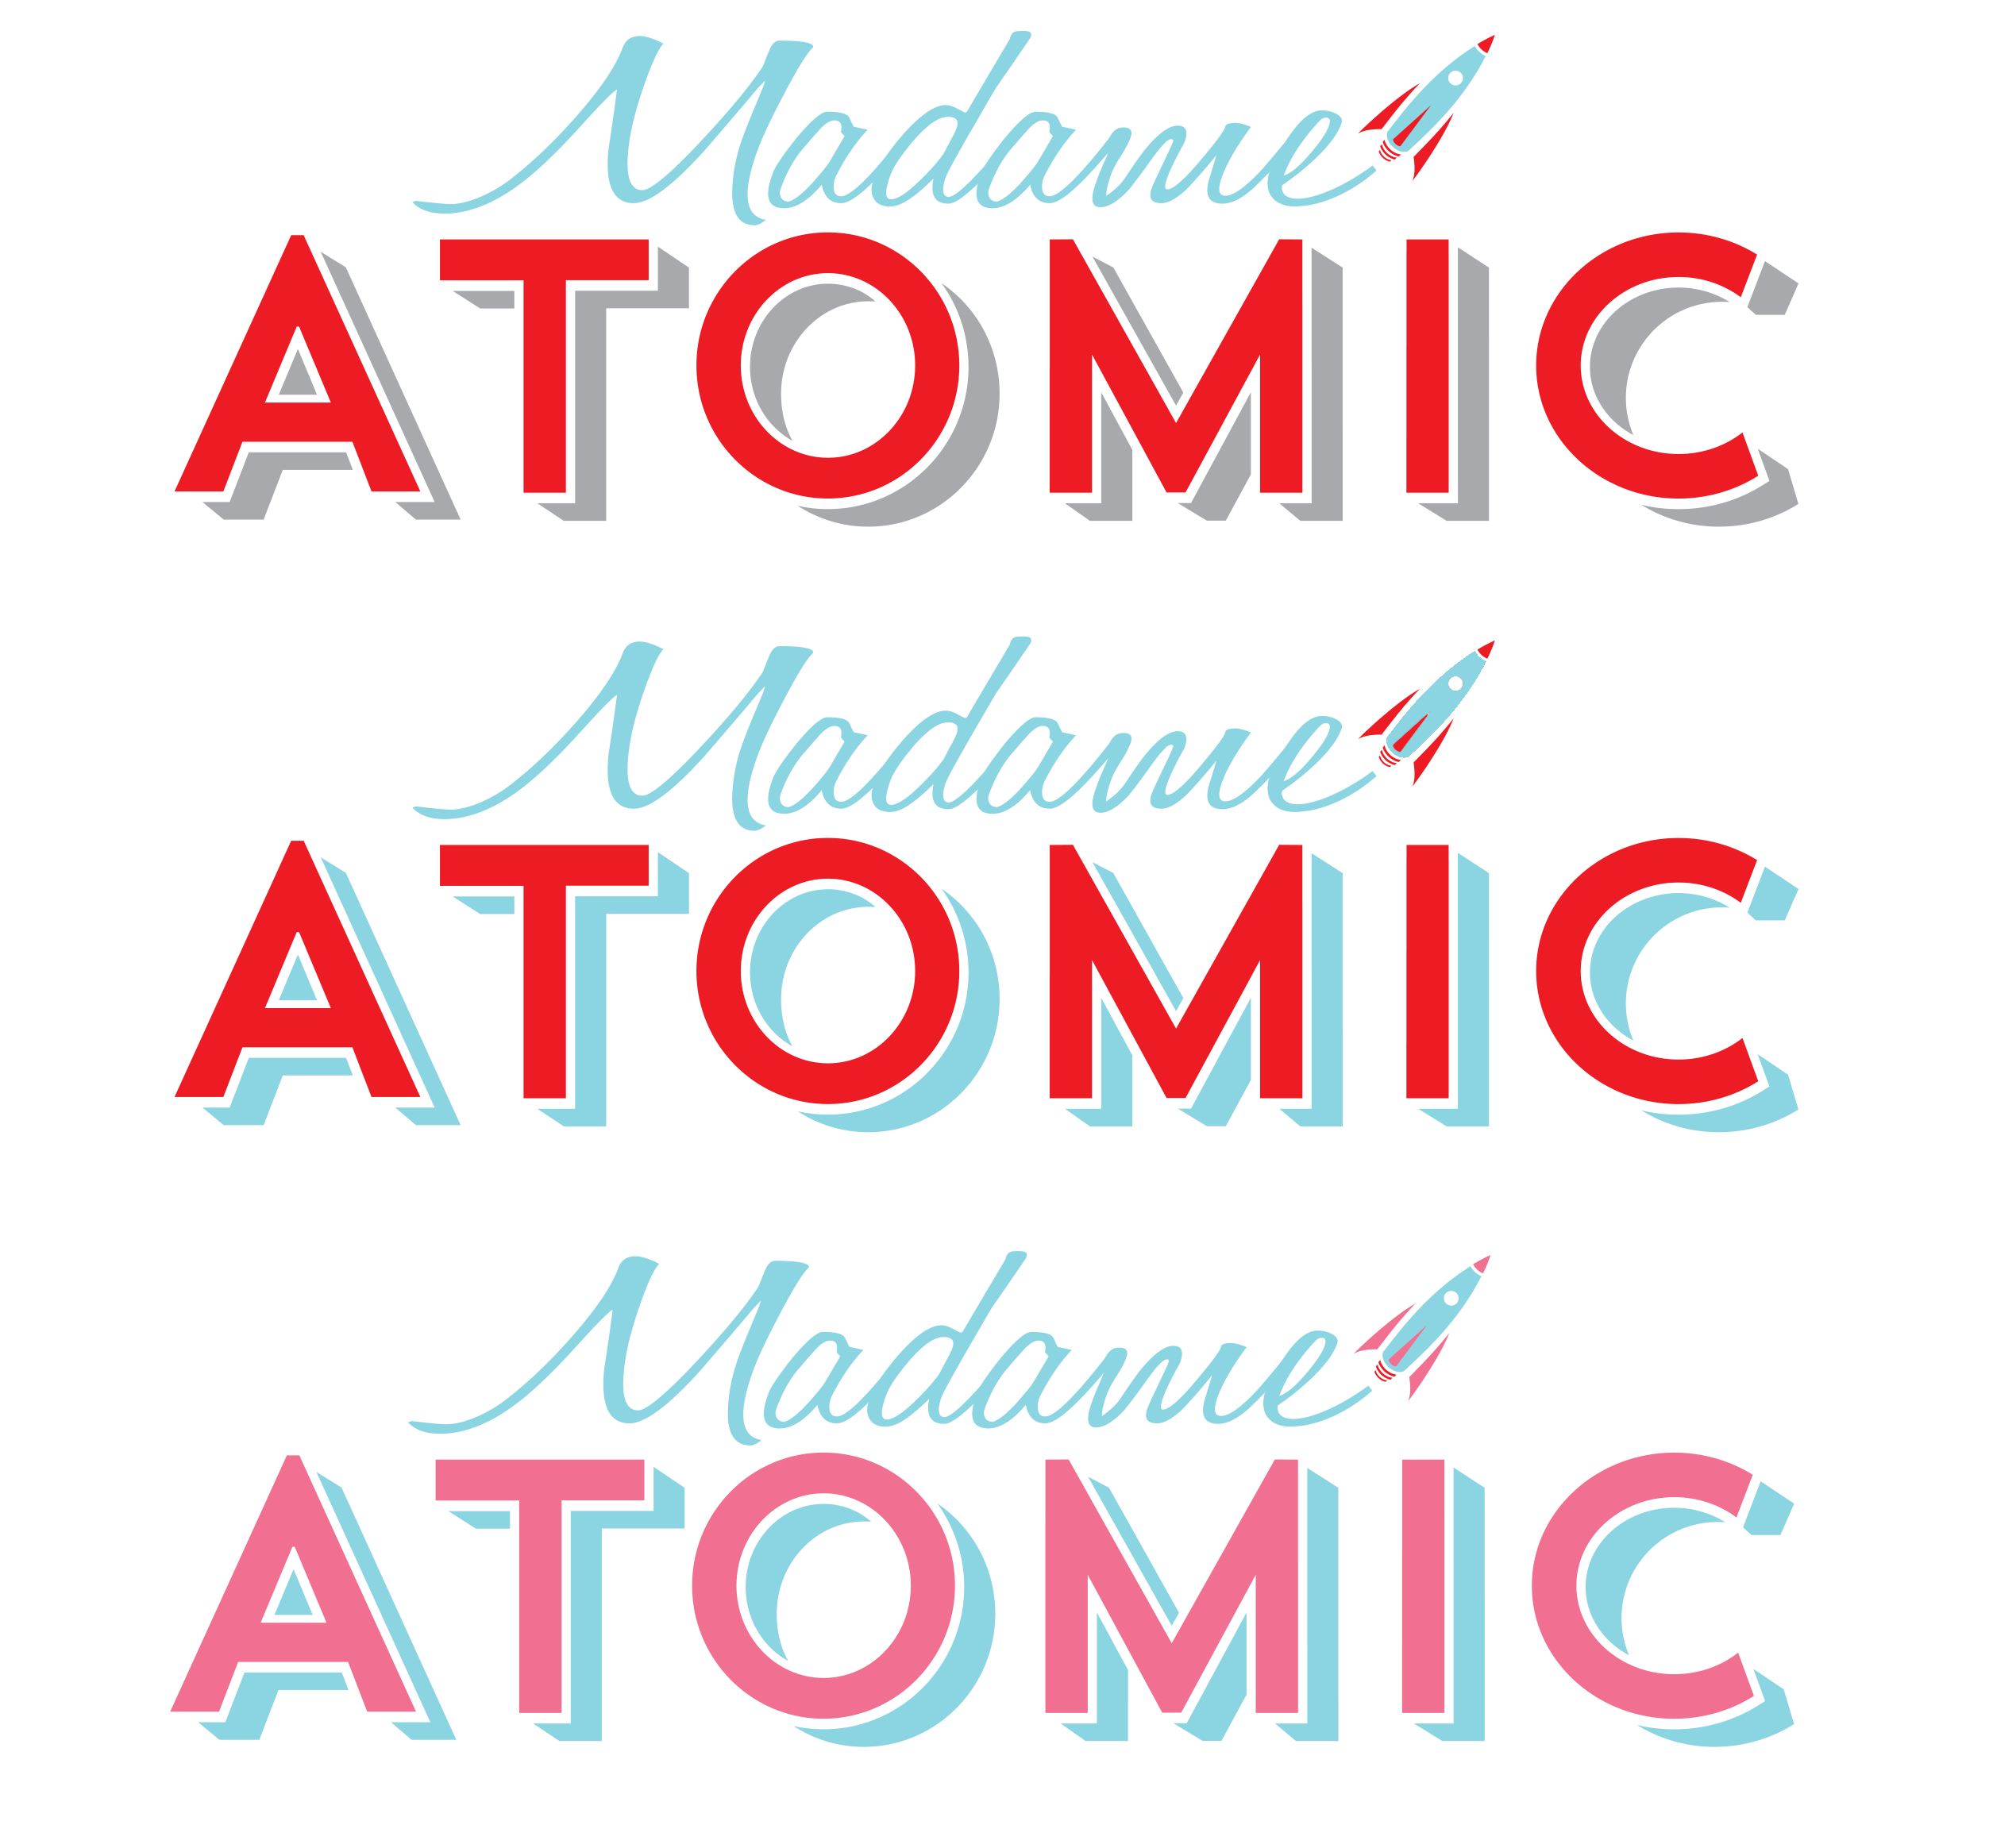 stunning modernist 50s atomic era logo with a cute rocket in alternate colourways